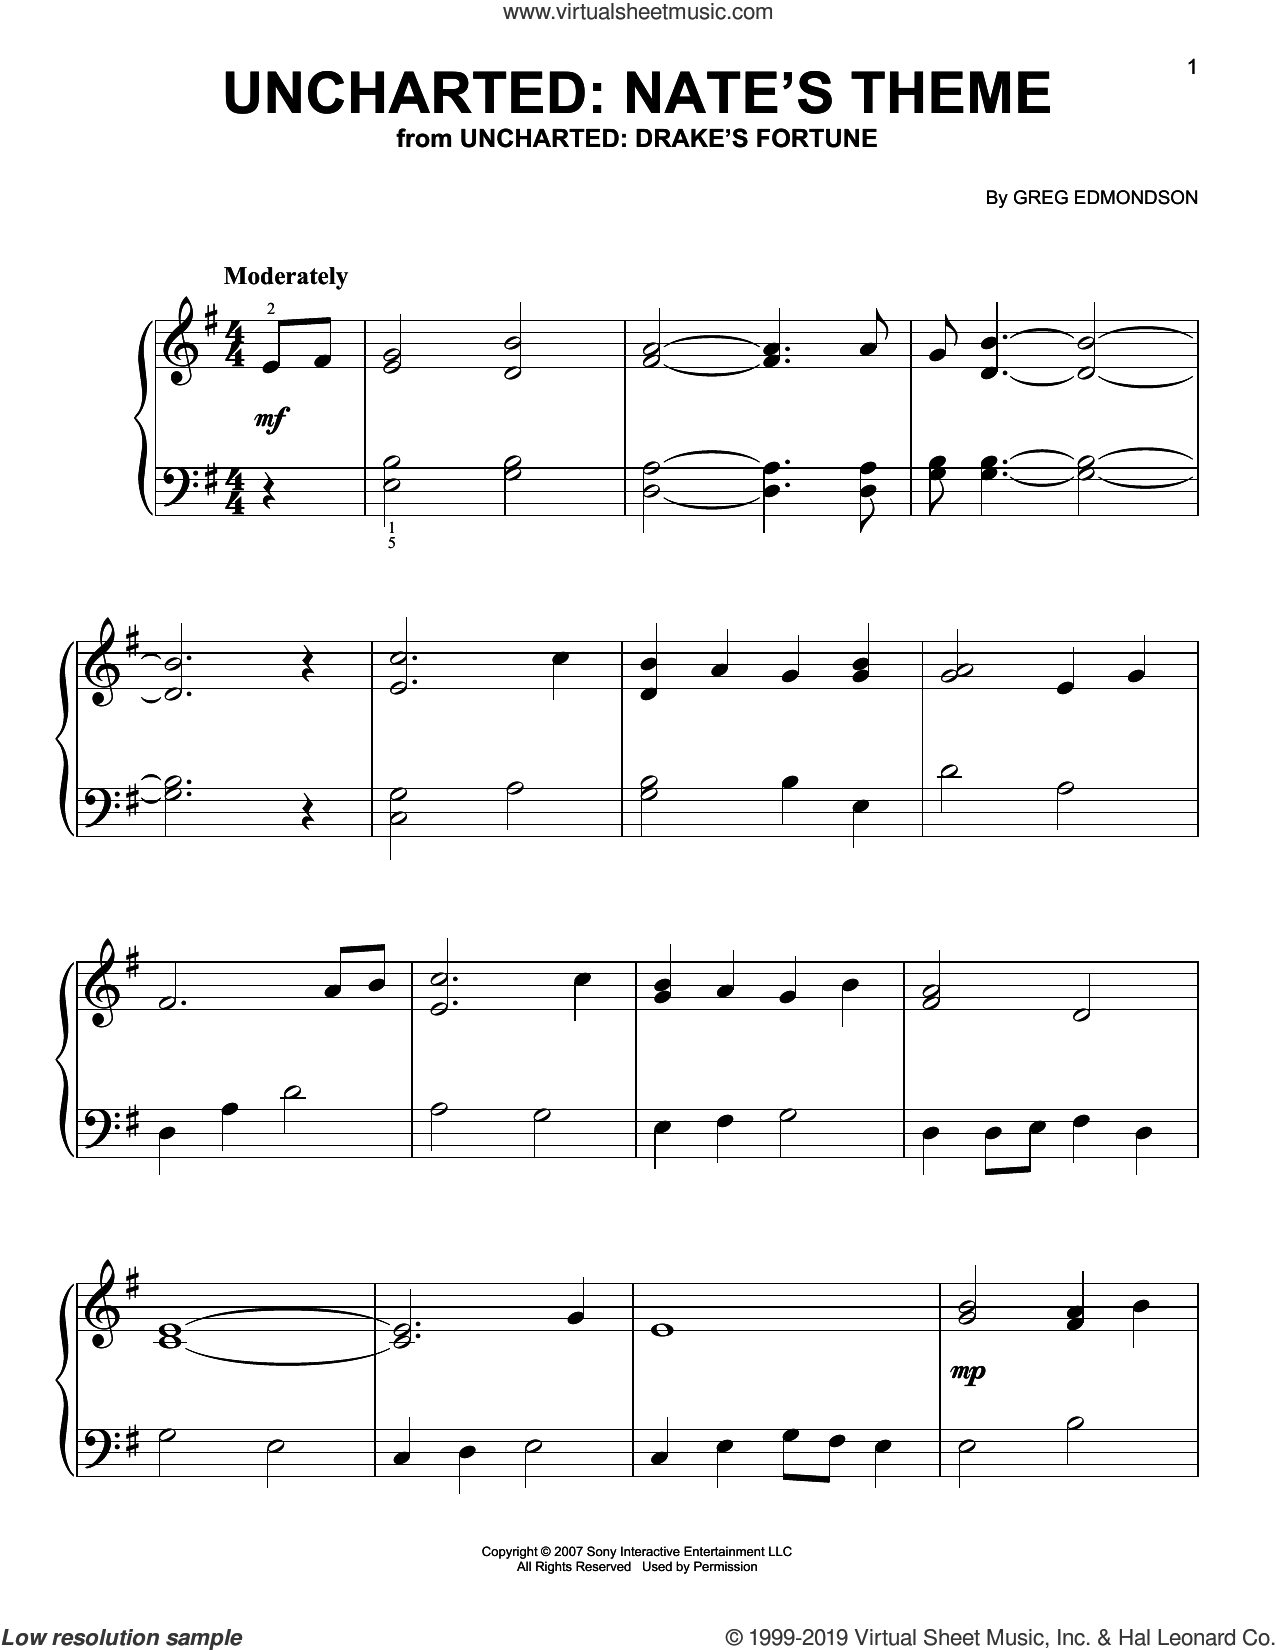 Uncharted: Nate's Theme sheet music for piano solo by Greg Edmonson, easy skill level